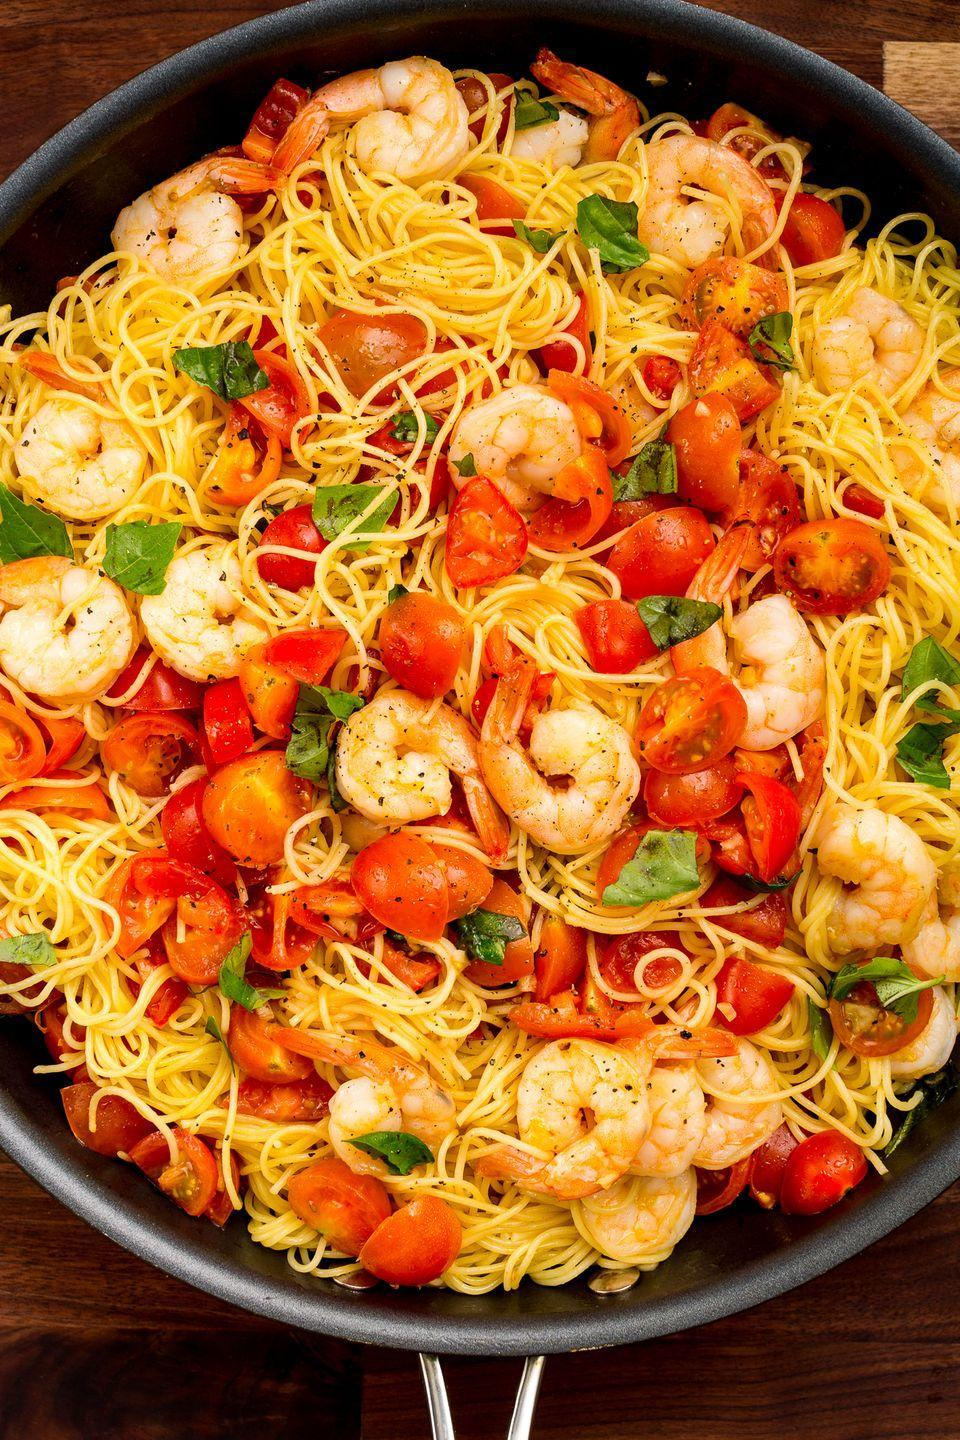 """<p>You're going to be making this satisfying shrimp pasta all summer long.</p><p>Get the recipe from <a href=""""https://www.delish.com/cooking/recipe-ideas/recipes/a47440/bruschetta-shrimp-pasta-recipe/"""" rel=""""nofollow noopener"""" target=""""_blank"""" data-ylk=""""slk:Delish"""" class=""""link rapid-noclick-resp"""">Delish</a>.</p>"""